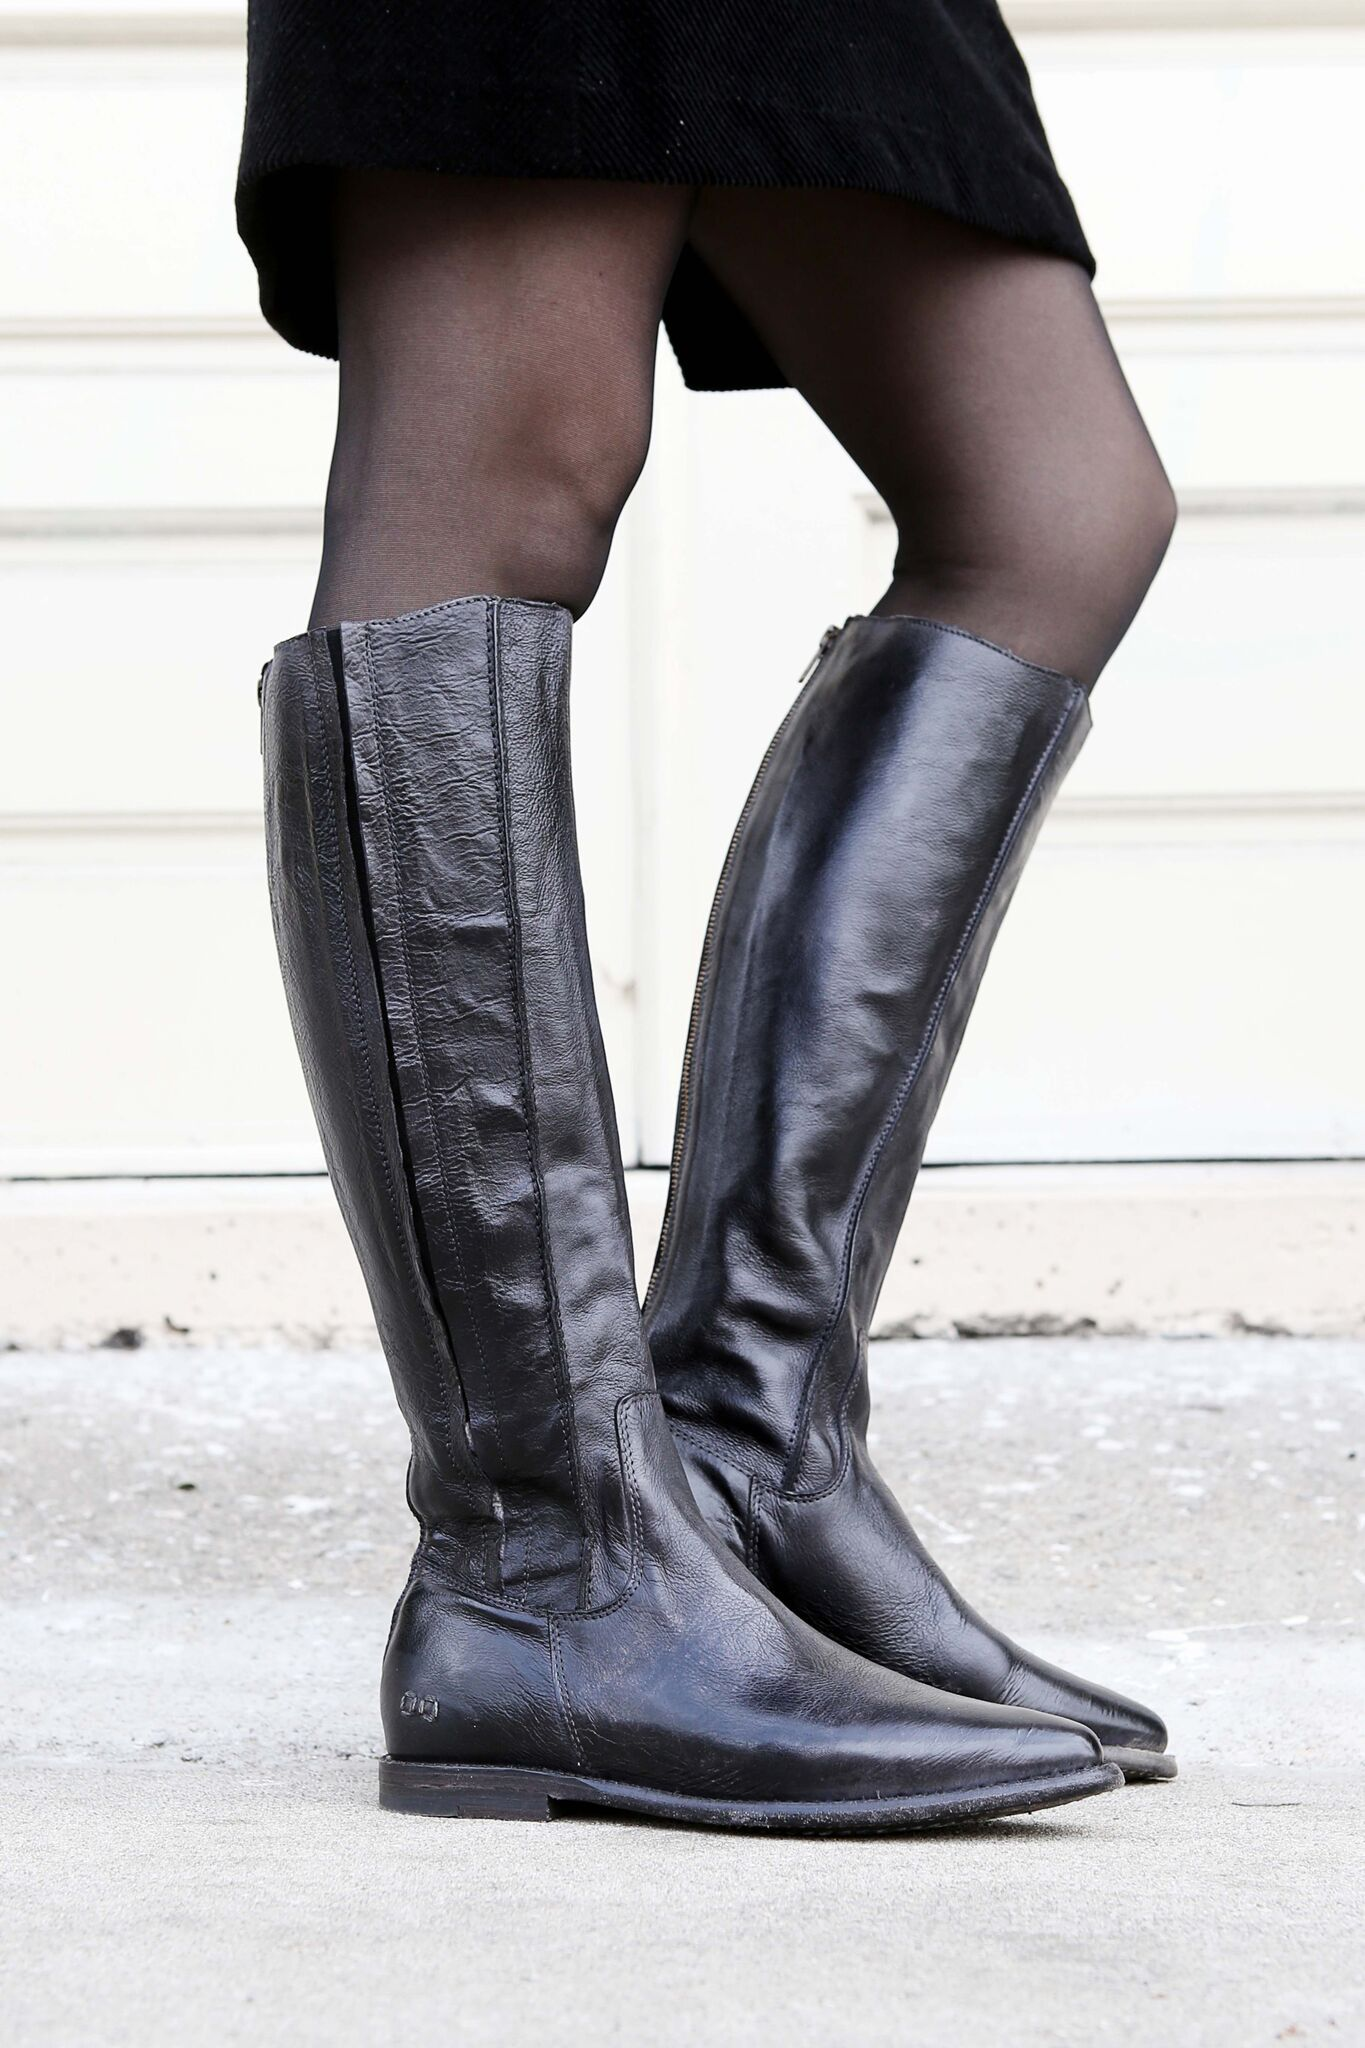 These Handmade Black Leather Knee High Boots Pair Perfectly With Tights And A Dress Boots Womens Tall Boots Black Leather Knee High Boots [ 2048 x 1365 Pixel ]